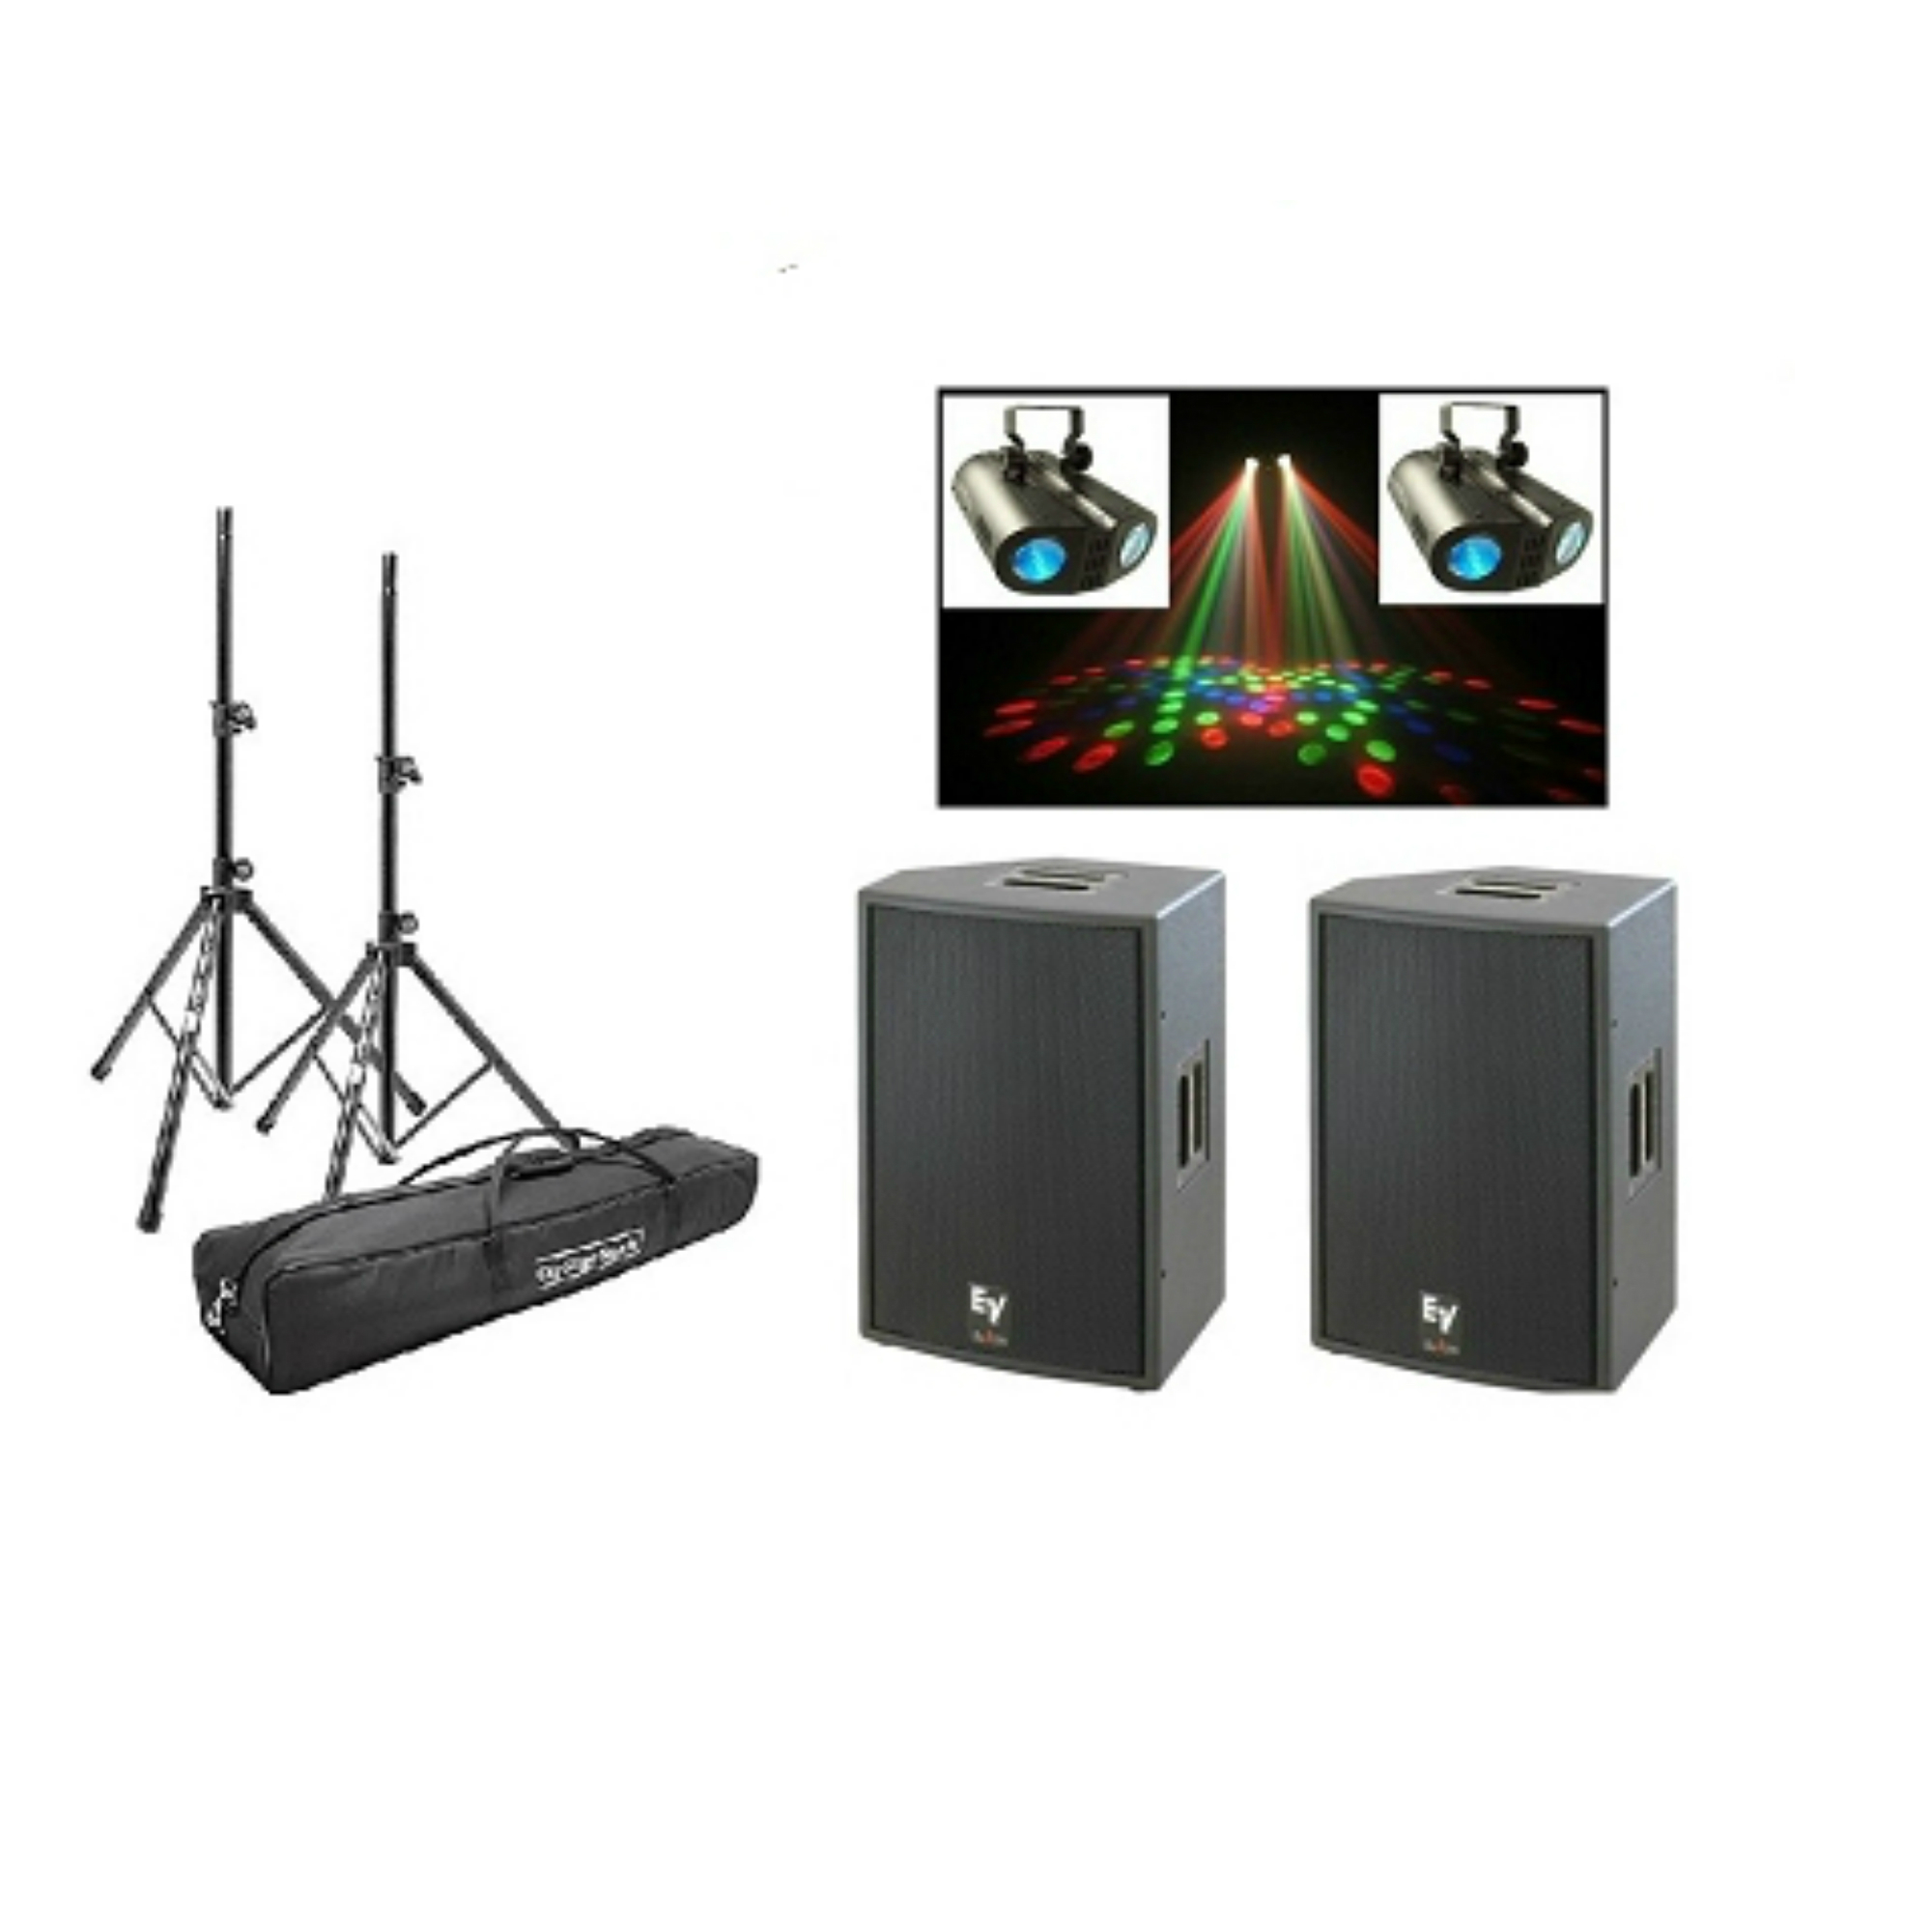 Two Powered Speakers With IPod Connection And Party Lights Rental Package D